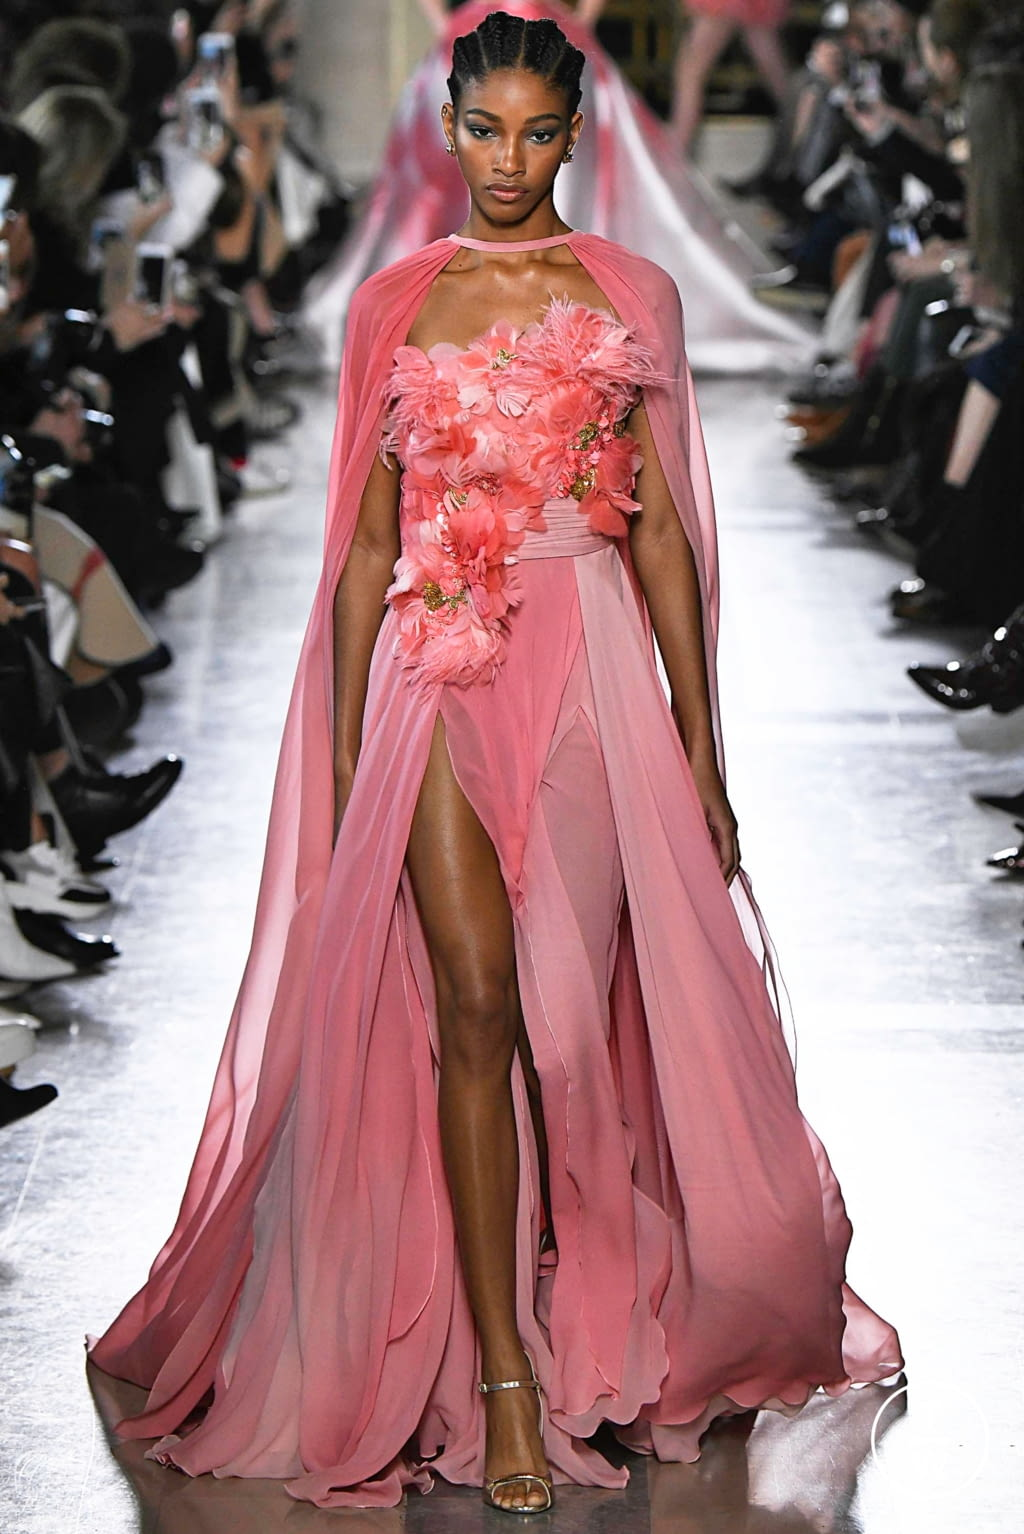 Fashion Week Paris Spring/Summer 2019 look 18 from the Elie Saab collection 高级定制